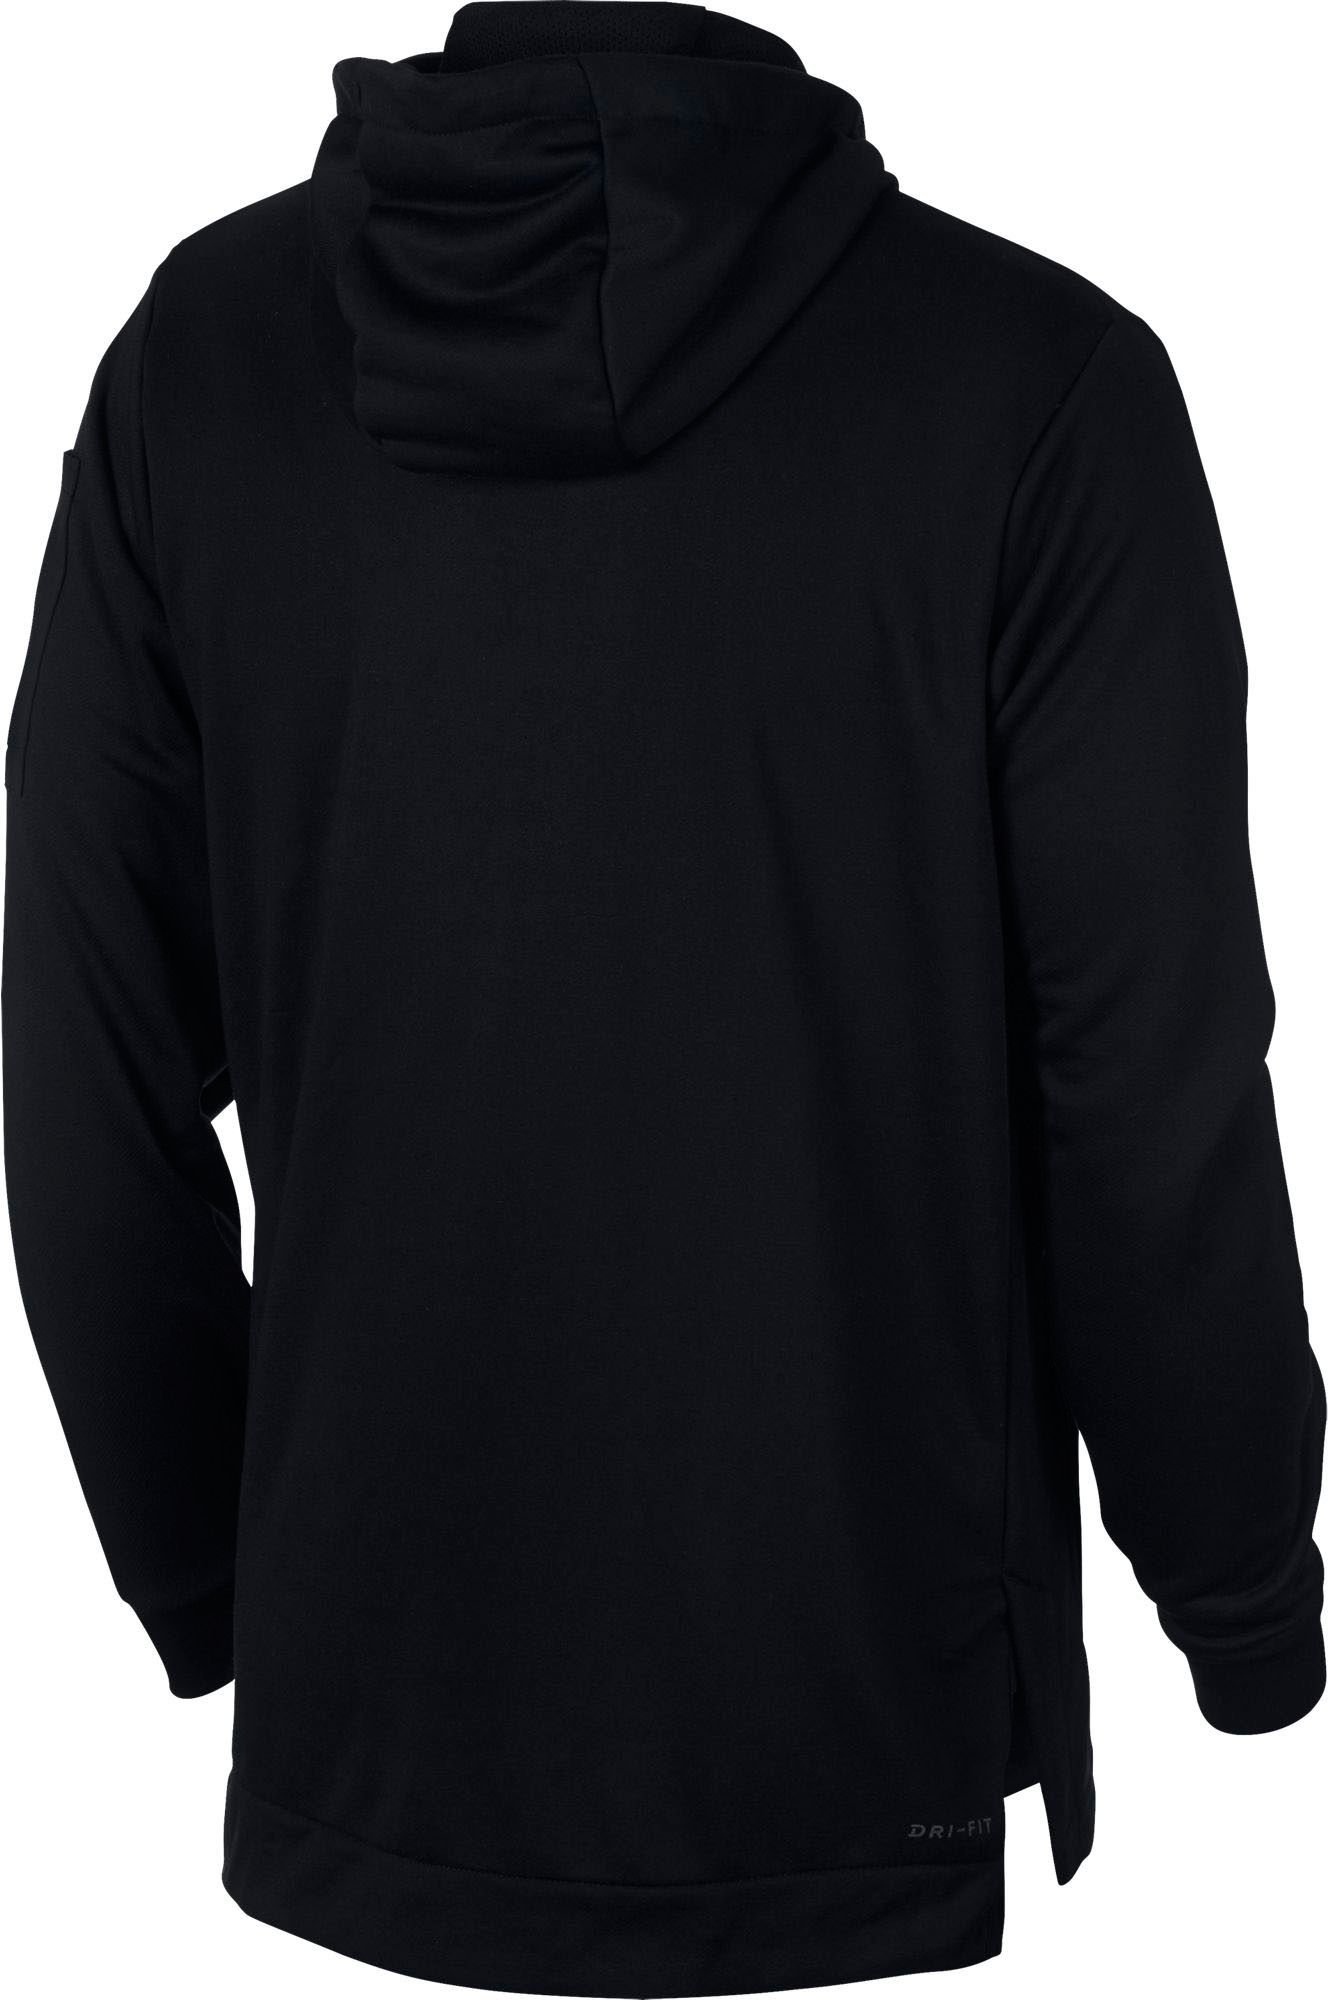 22a938a8 NIKE Men's Project X Dry HD Full Zip Hoodie | Team Immortal ...